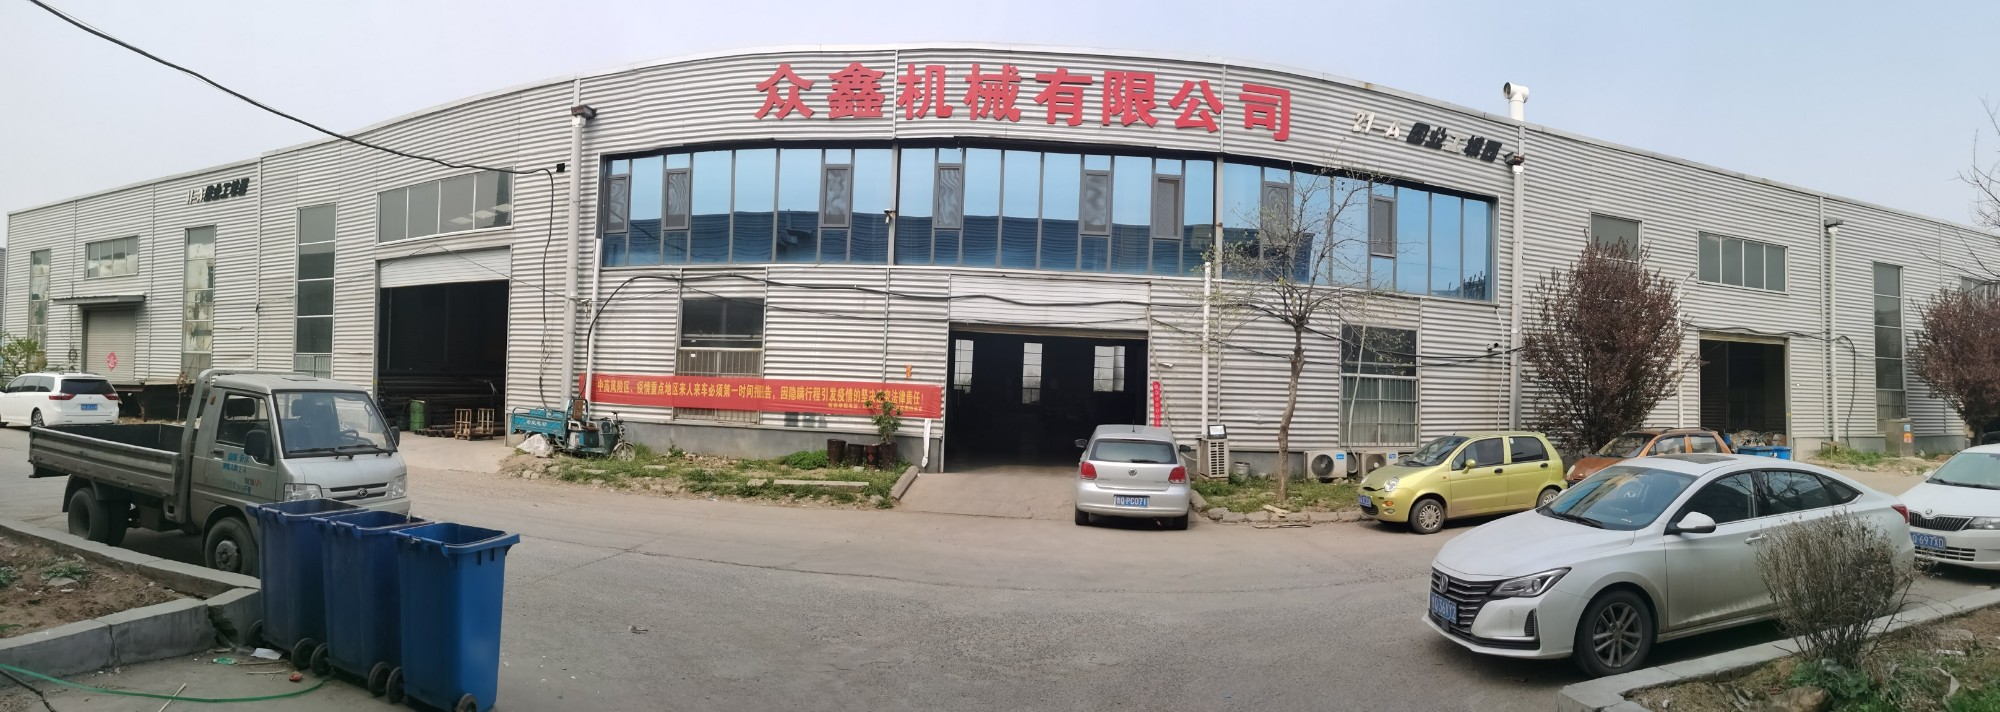 Yishui Zhongxin Machinery Co., Ltd.